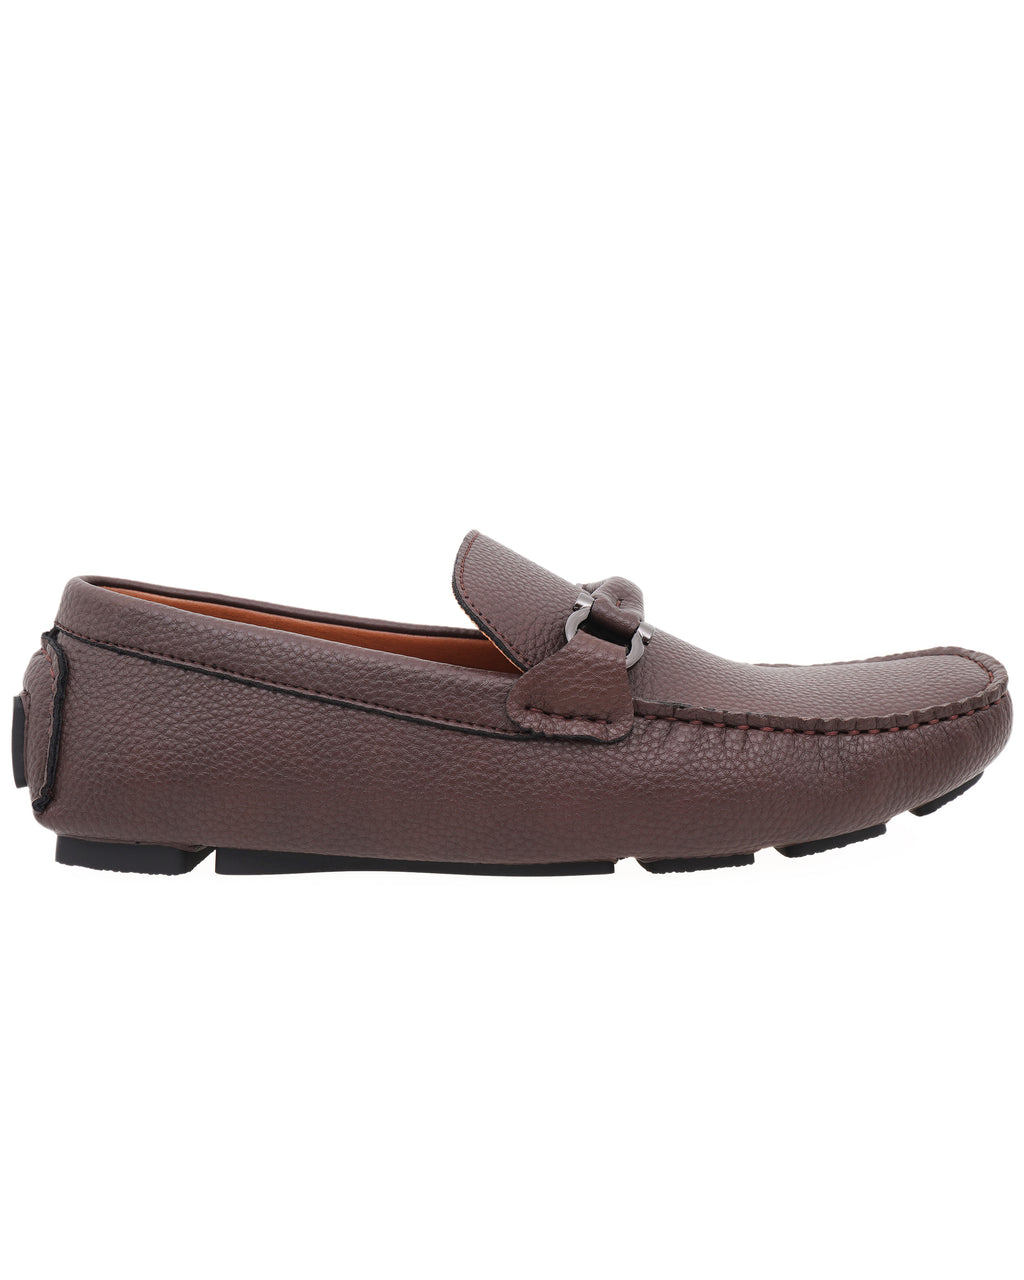 Tomaz C464 Metal Buckle Moccasins (Coffee)